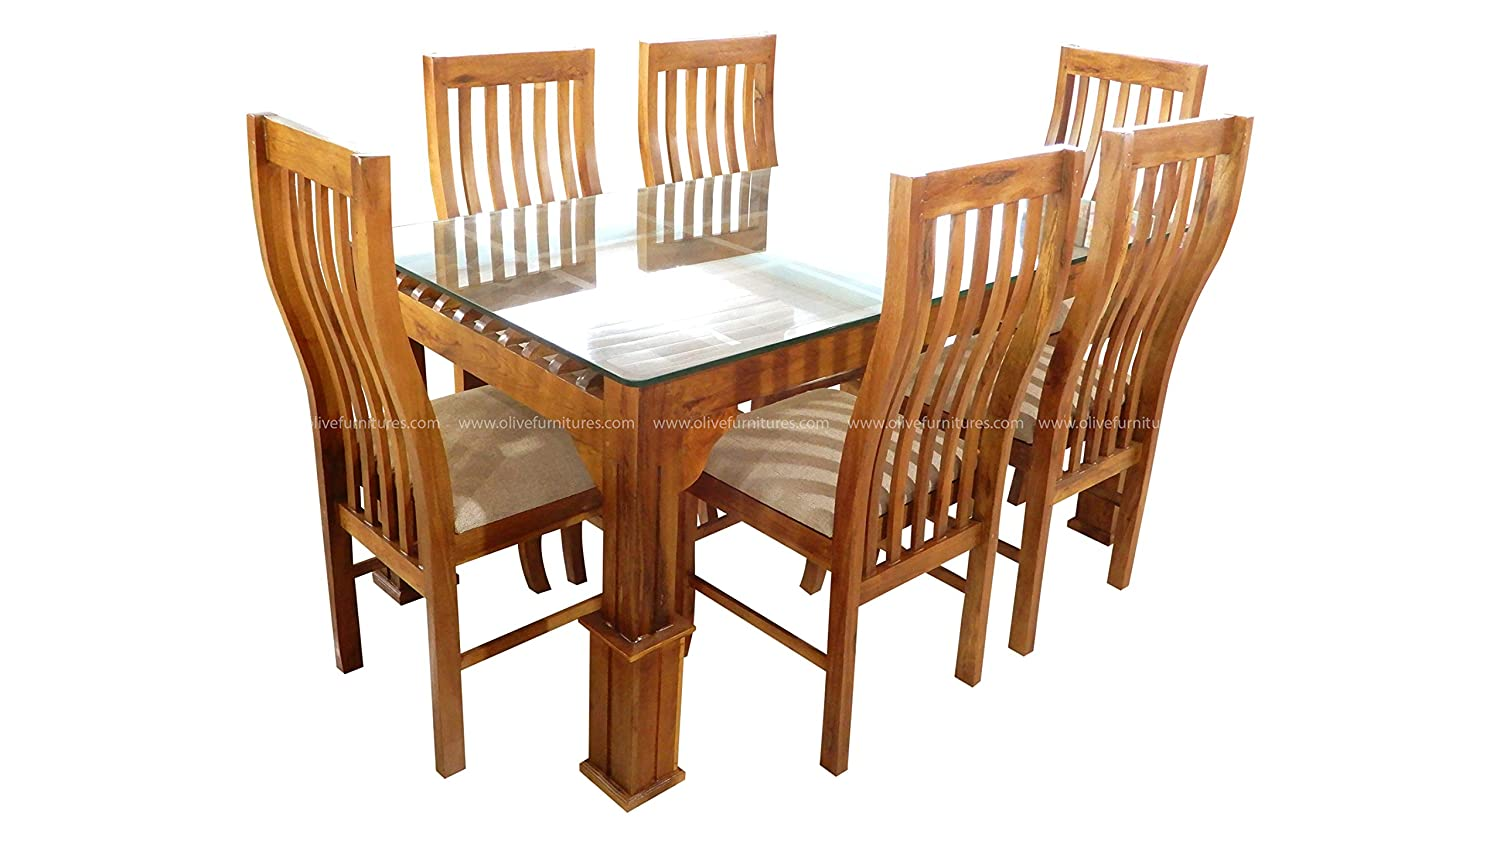 Furniture Teak Wood Dining Table With Glass Top Set Of 6 Seater Wooden Chairs Toorshop